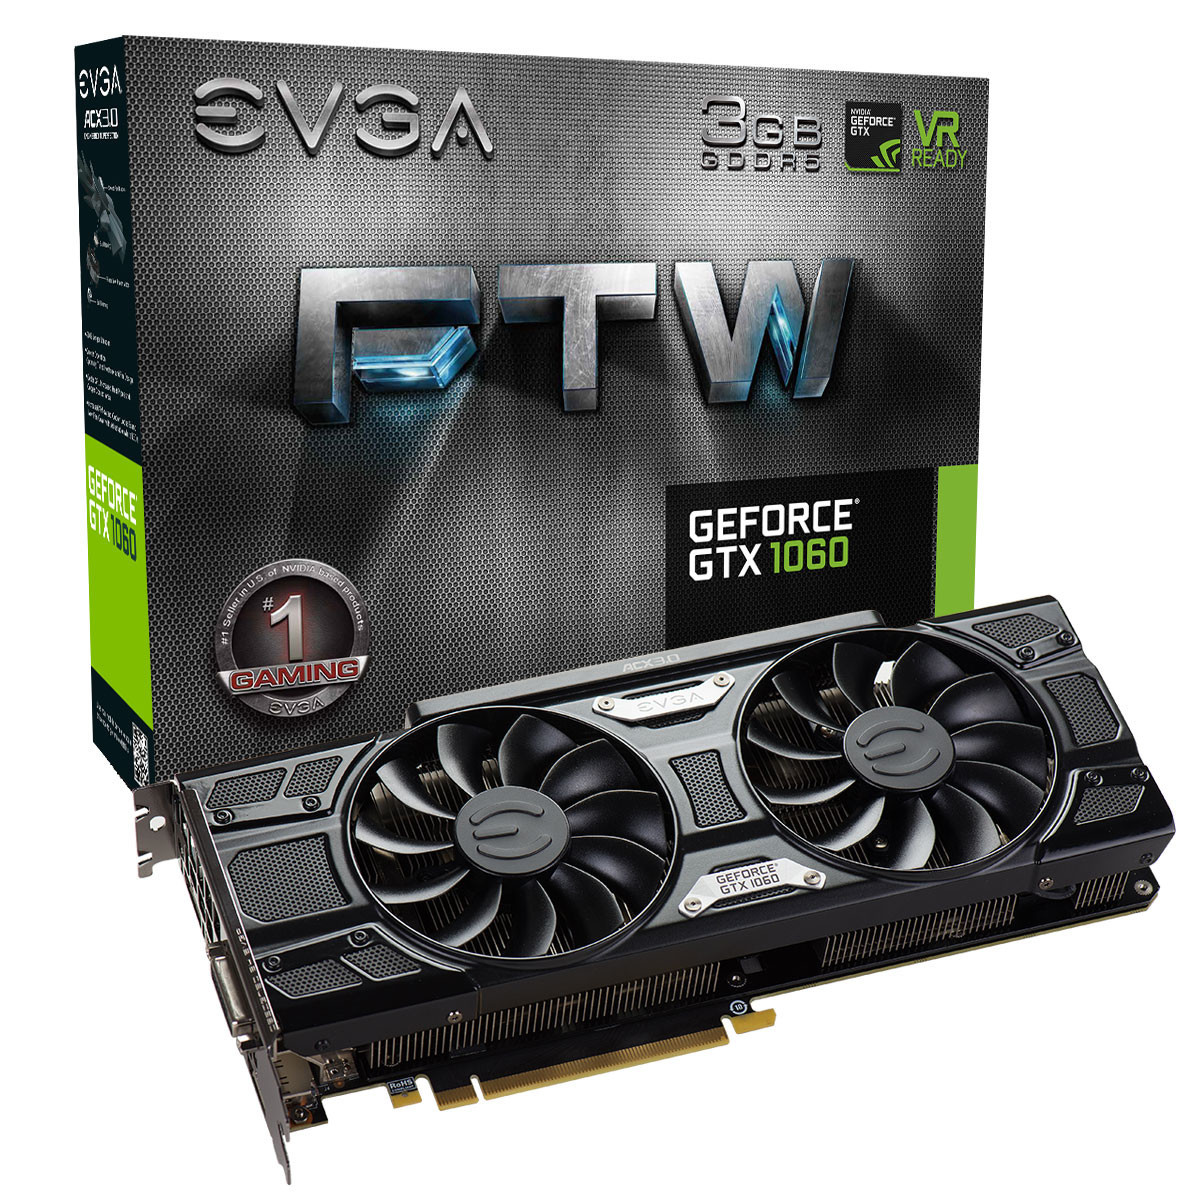 EVGA GTX 1070/1080 Overheating Issues Update - New BIOS Revision To